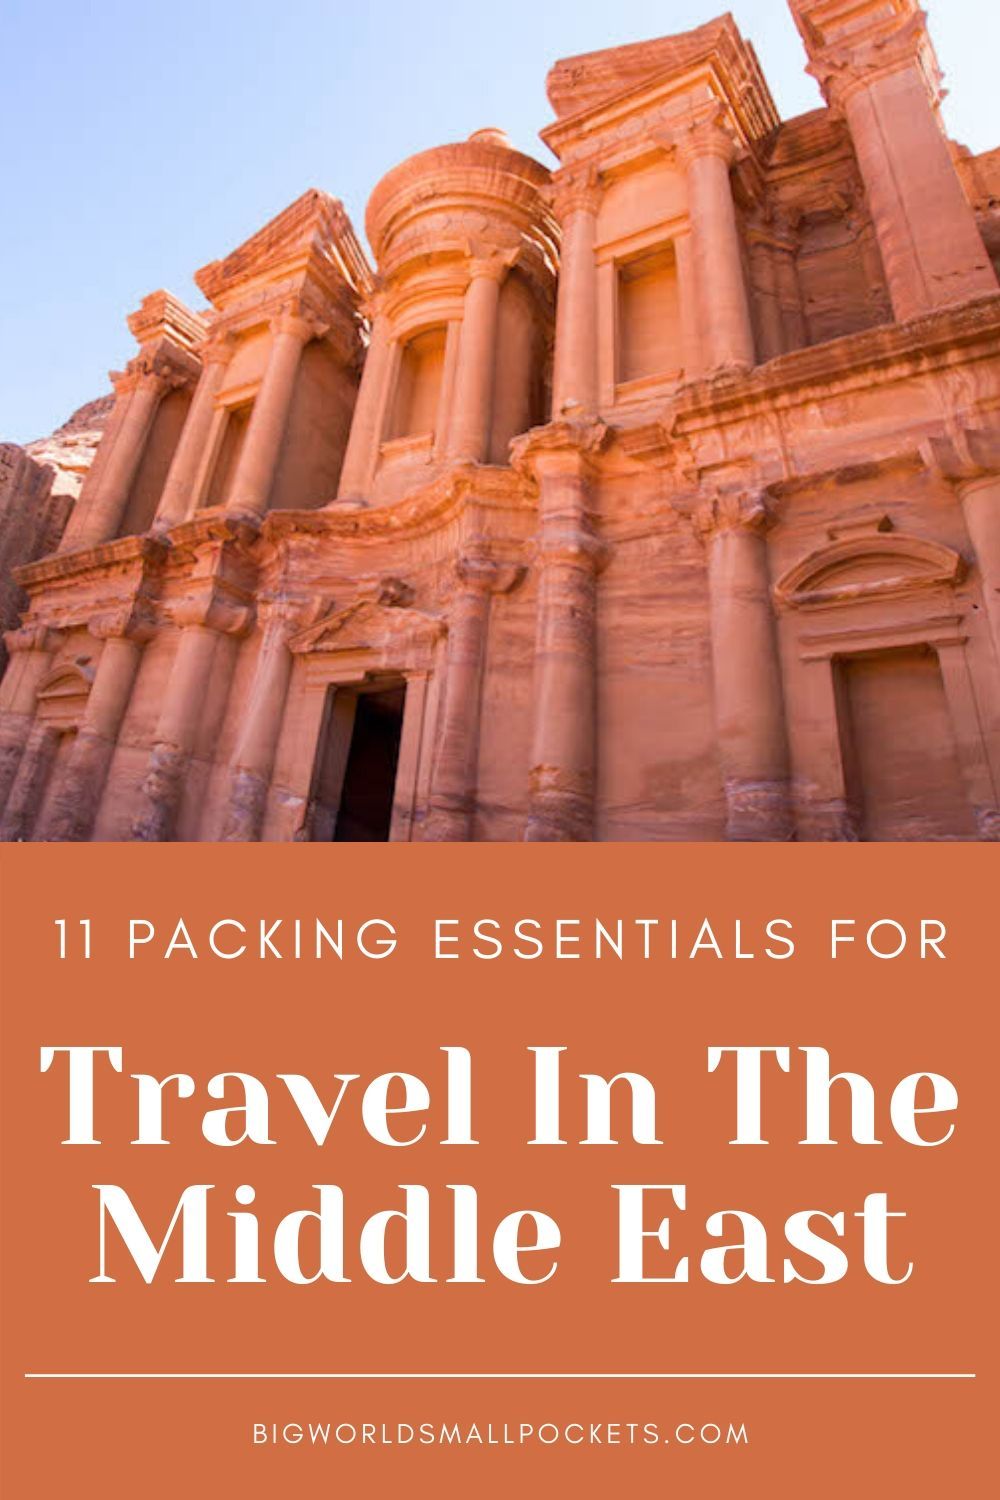 11 Things You Must Pack When You Travel the Middle East